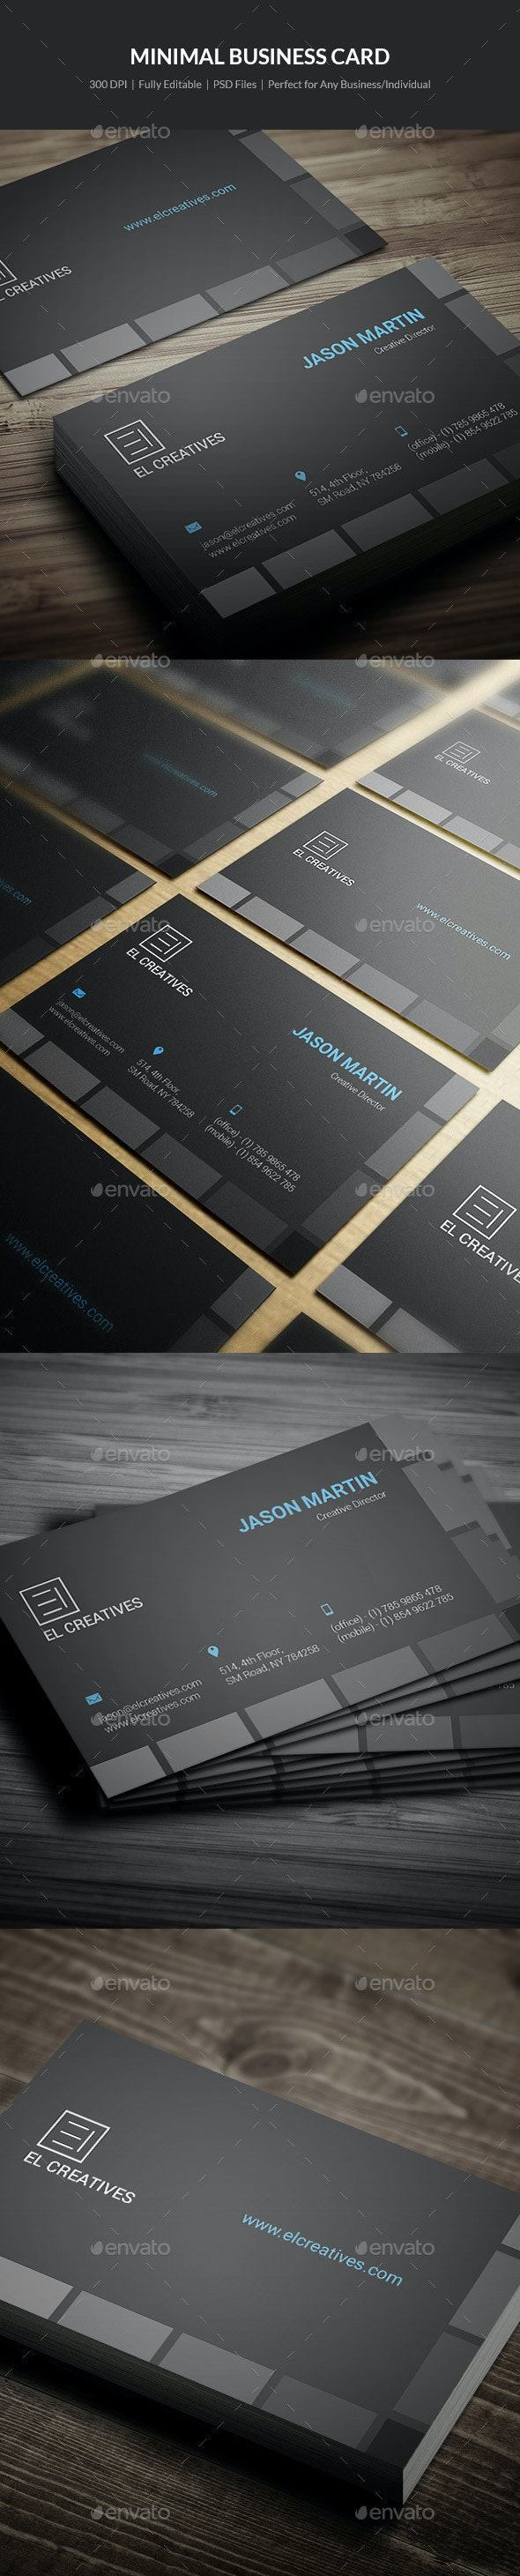 Creative Business Card - 02 - Corporate Business Cards